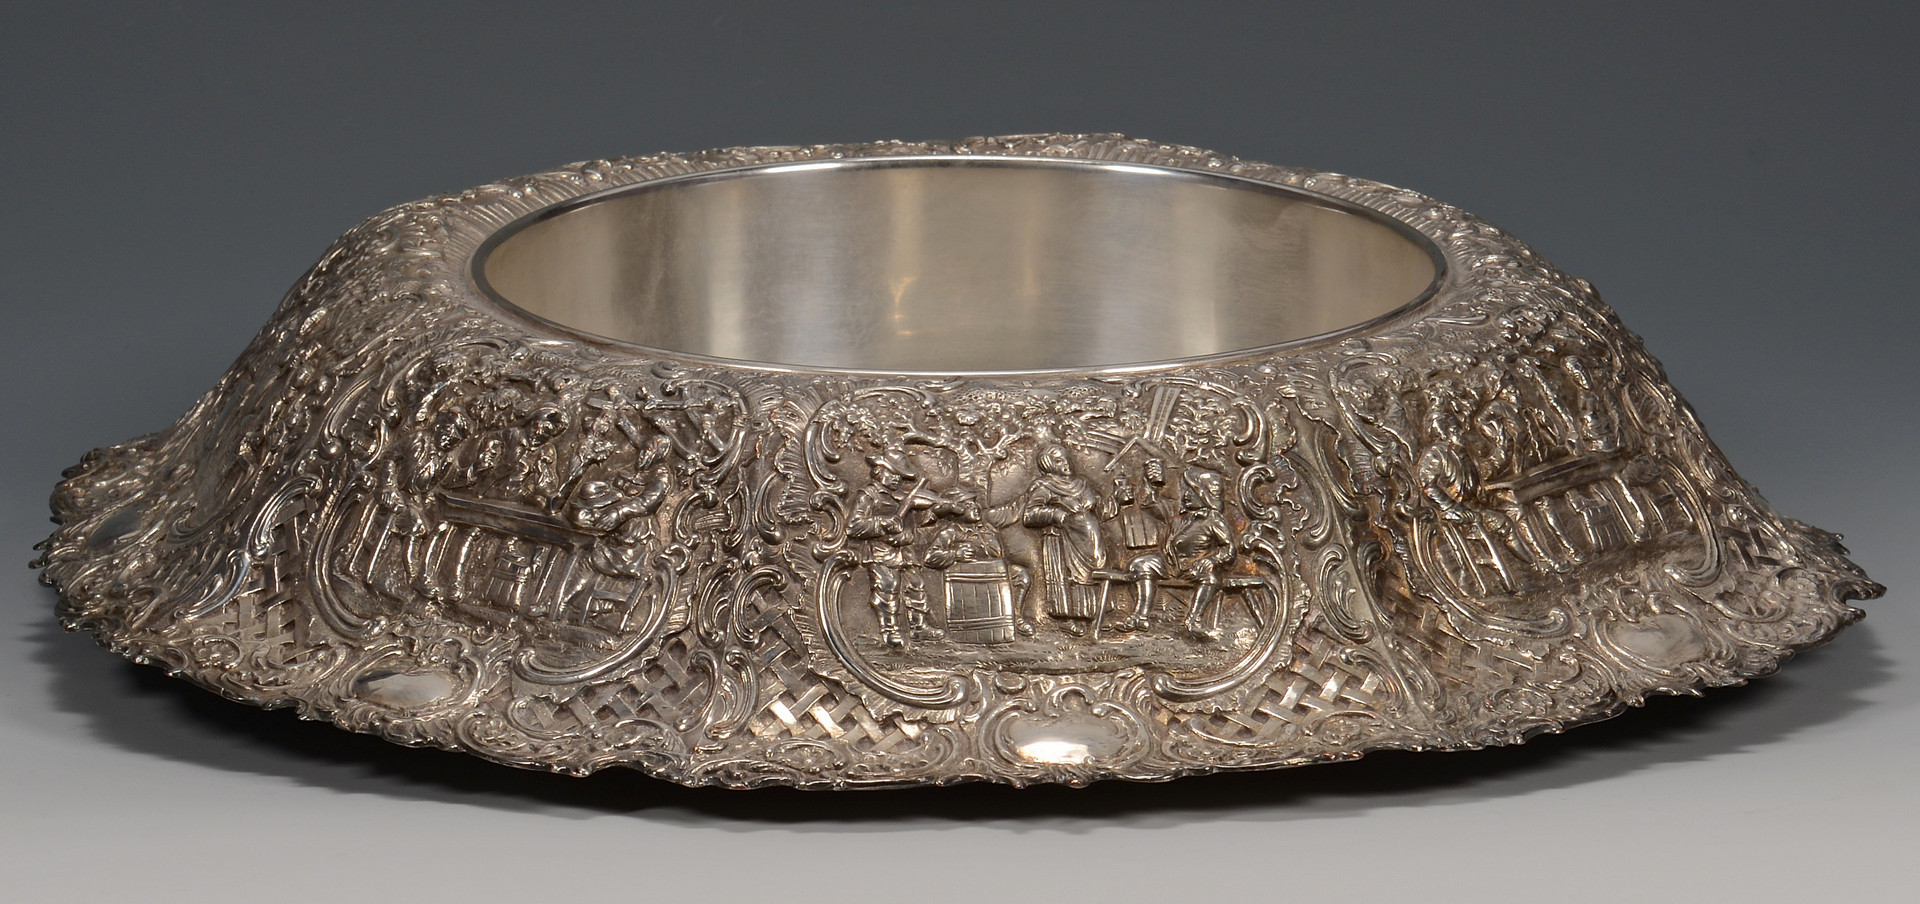 Lot 782: Silverplated centerpiece bowl